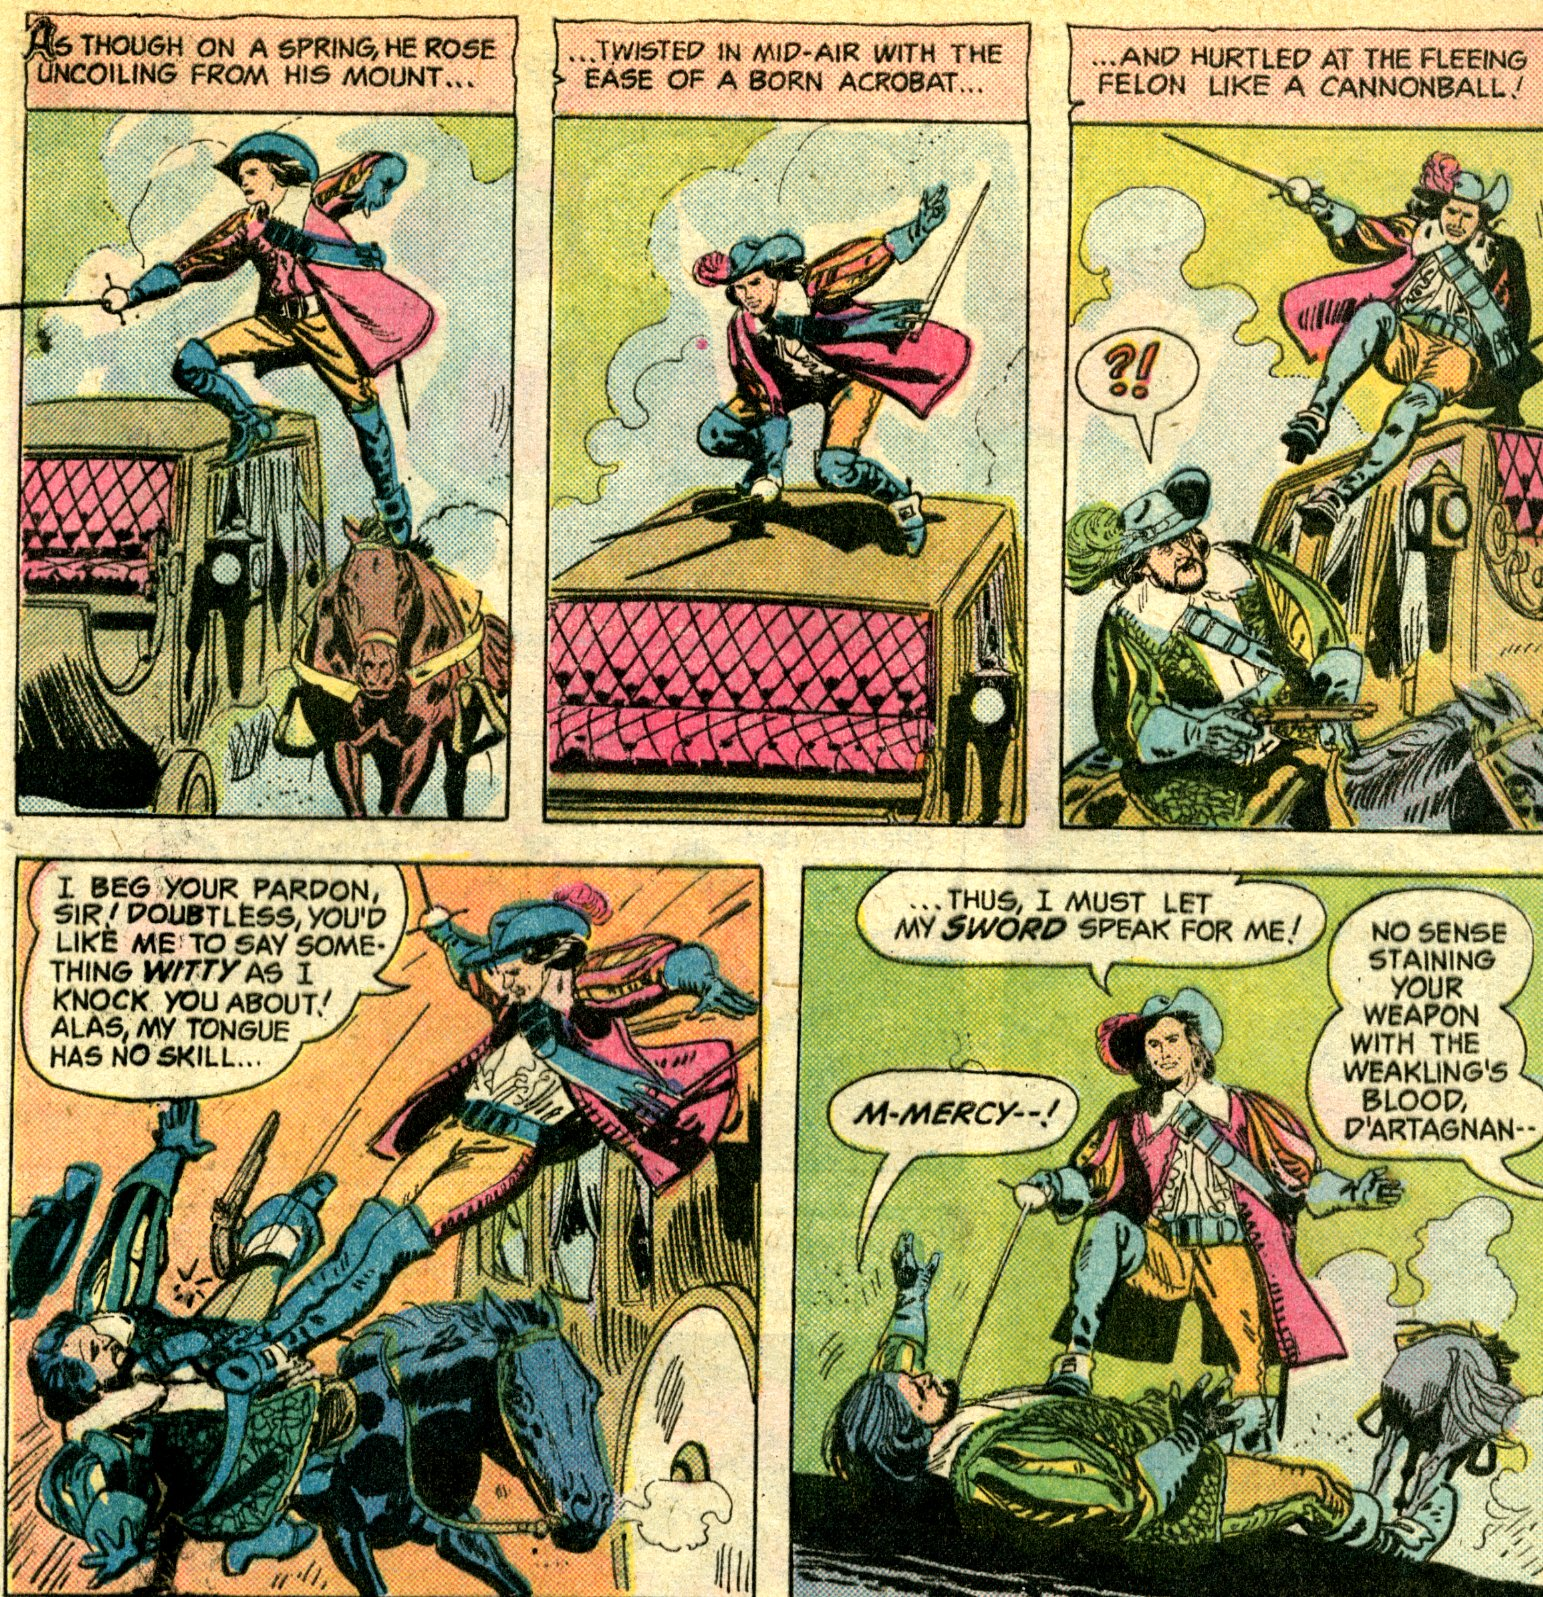 The First Of The Musketeer Stories Appeared In Dc Special #22, With Art By  Jorge Moliterni, Was Written By Denny O'neil In It, The Musketeers Are  Tasked